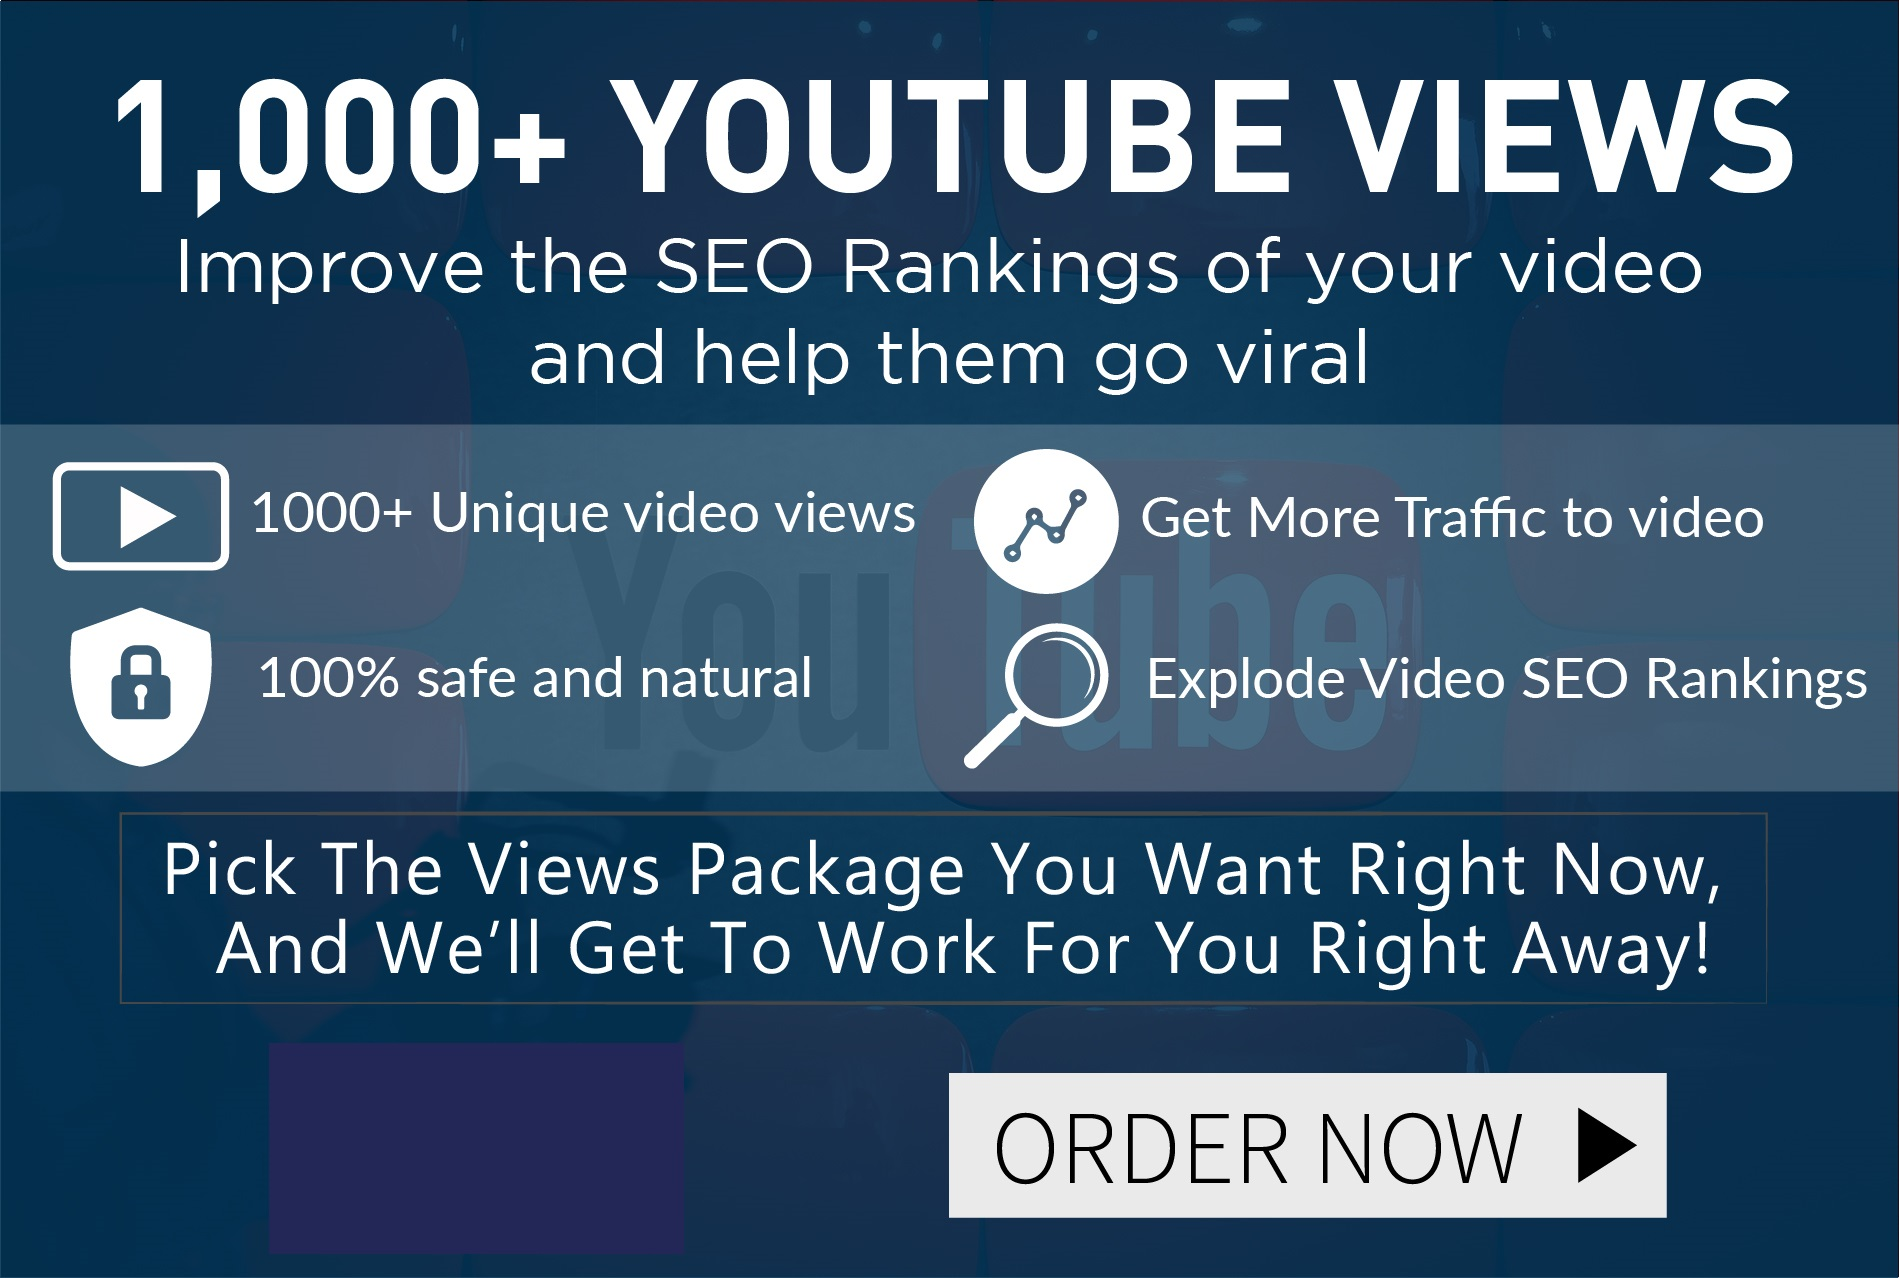 Blast Your Video To The Top of Google and Youtube With 1000 FAST Views